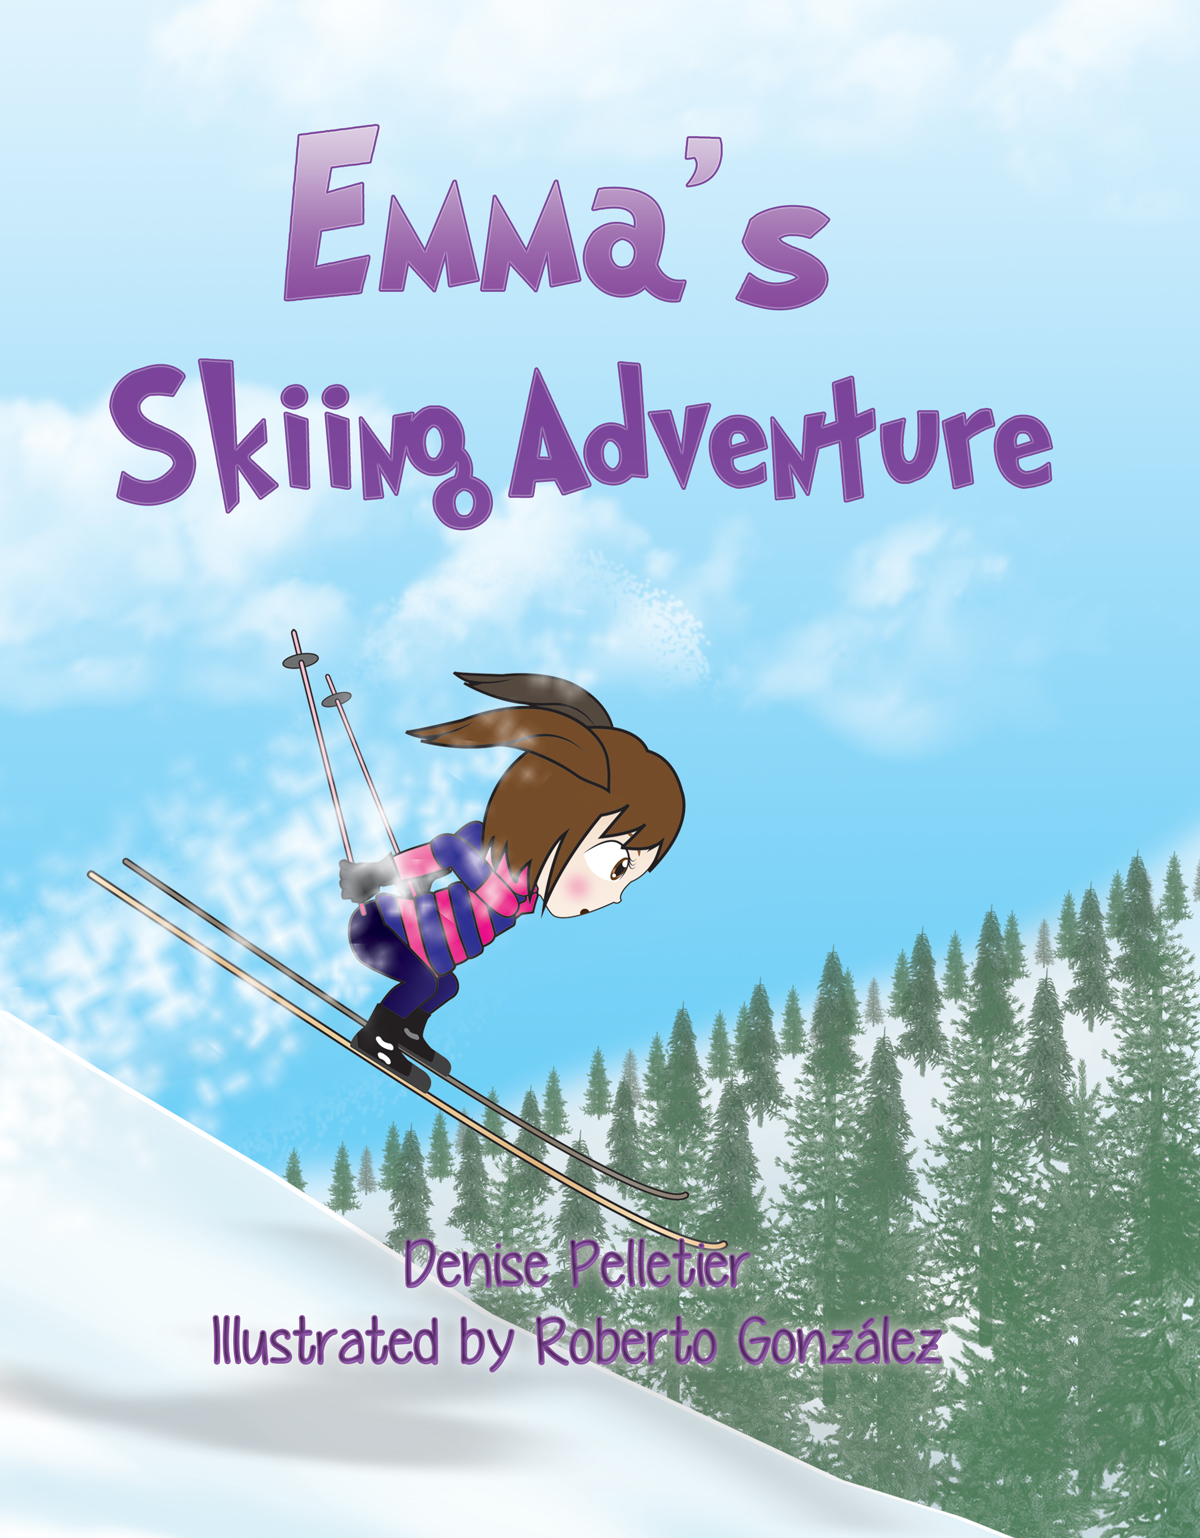 Emma's Skiing Adventure